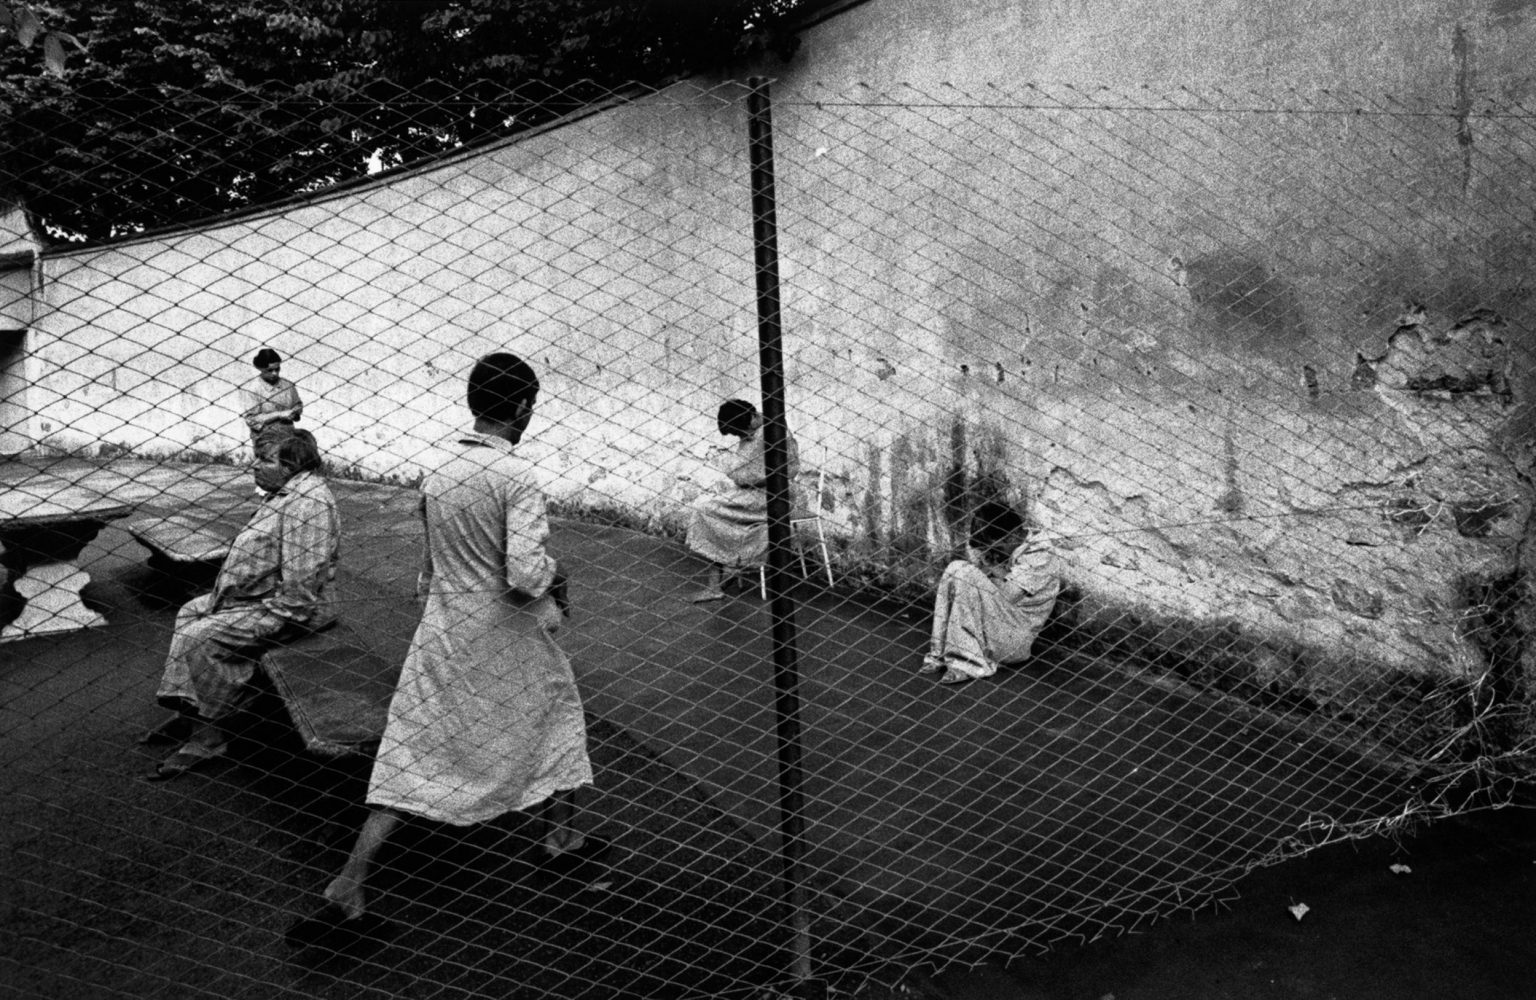 """Florence, 1968-1969 - Daily life inside the mental institution. ><  Firenze, 1968-1969 - Momenti di vita quotidiana nell'istituto psichiatrico.<p><span style=""""color: #ff0000""""><strong>*** SPECIAL   FEE   APPLIES ***</strong></span></p>"""